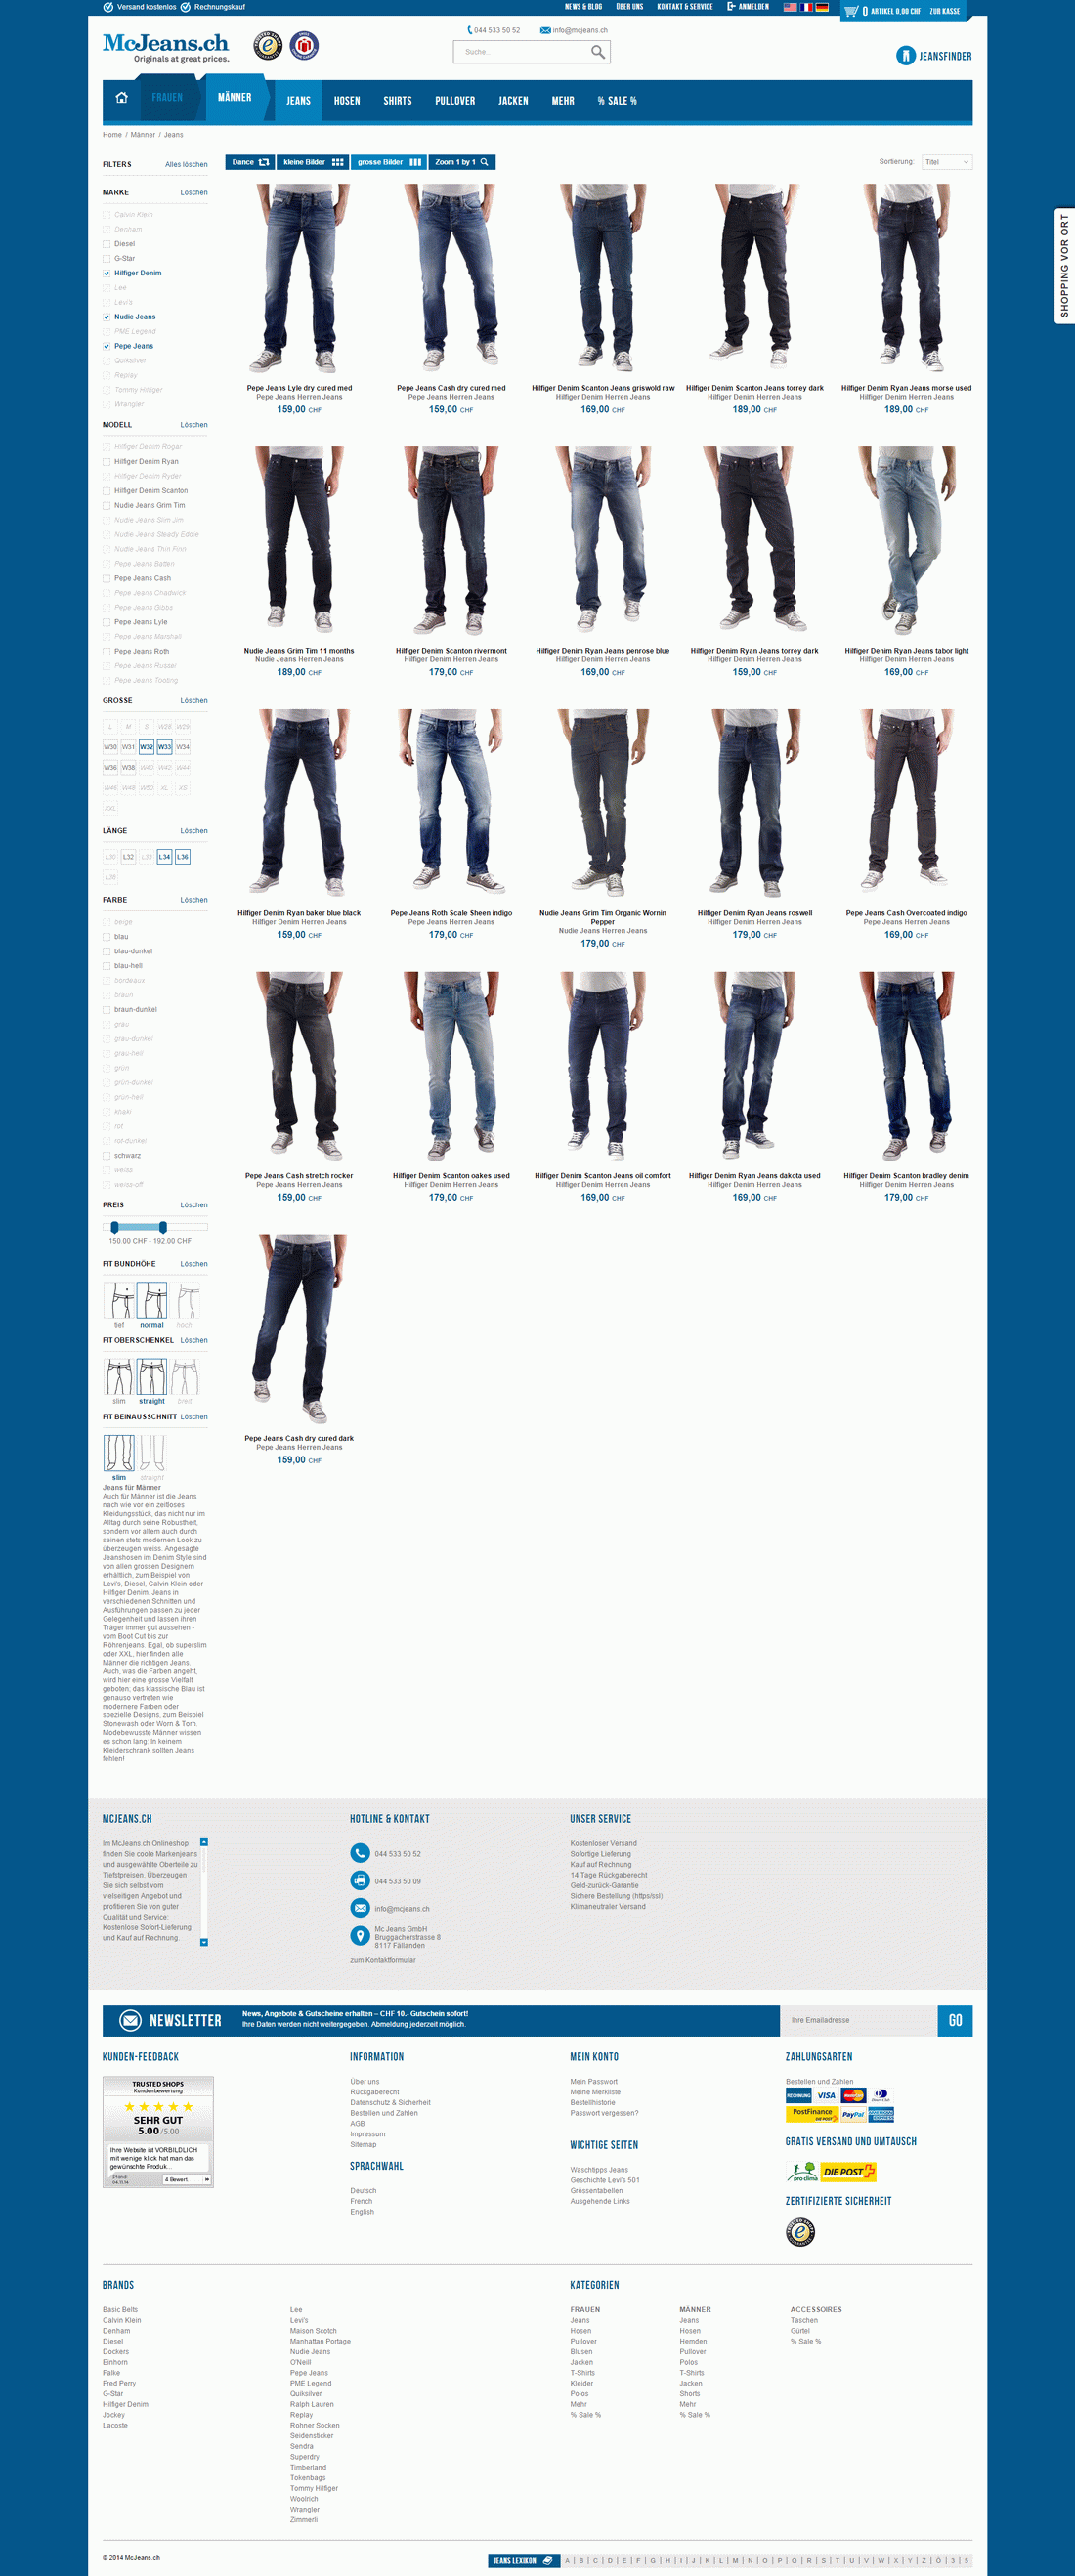 McJeans.ch-2